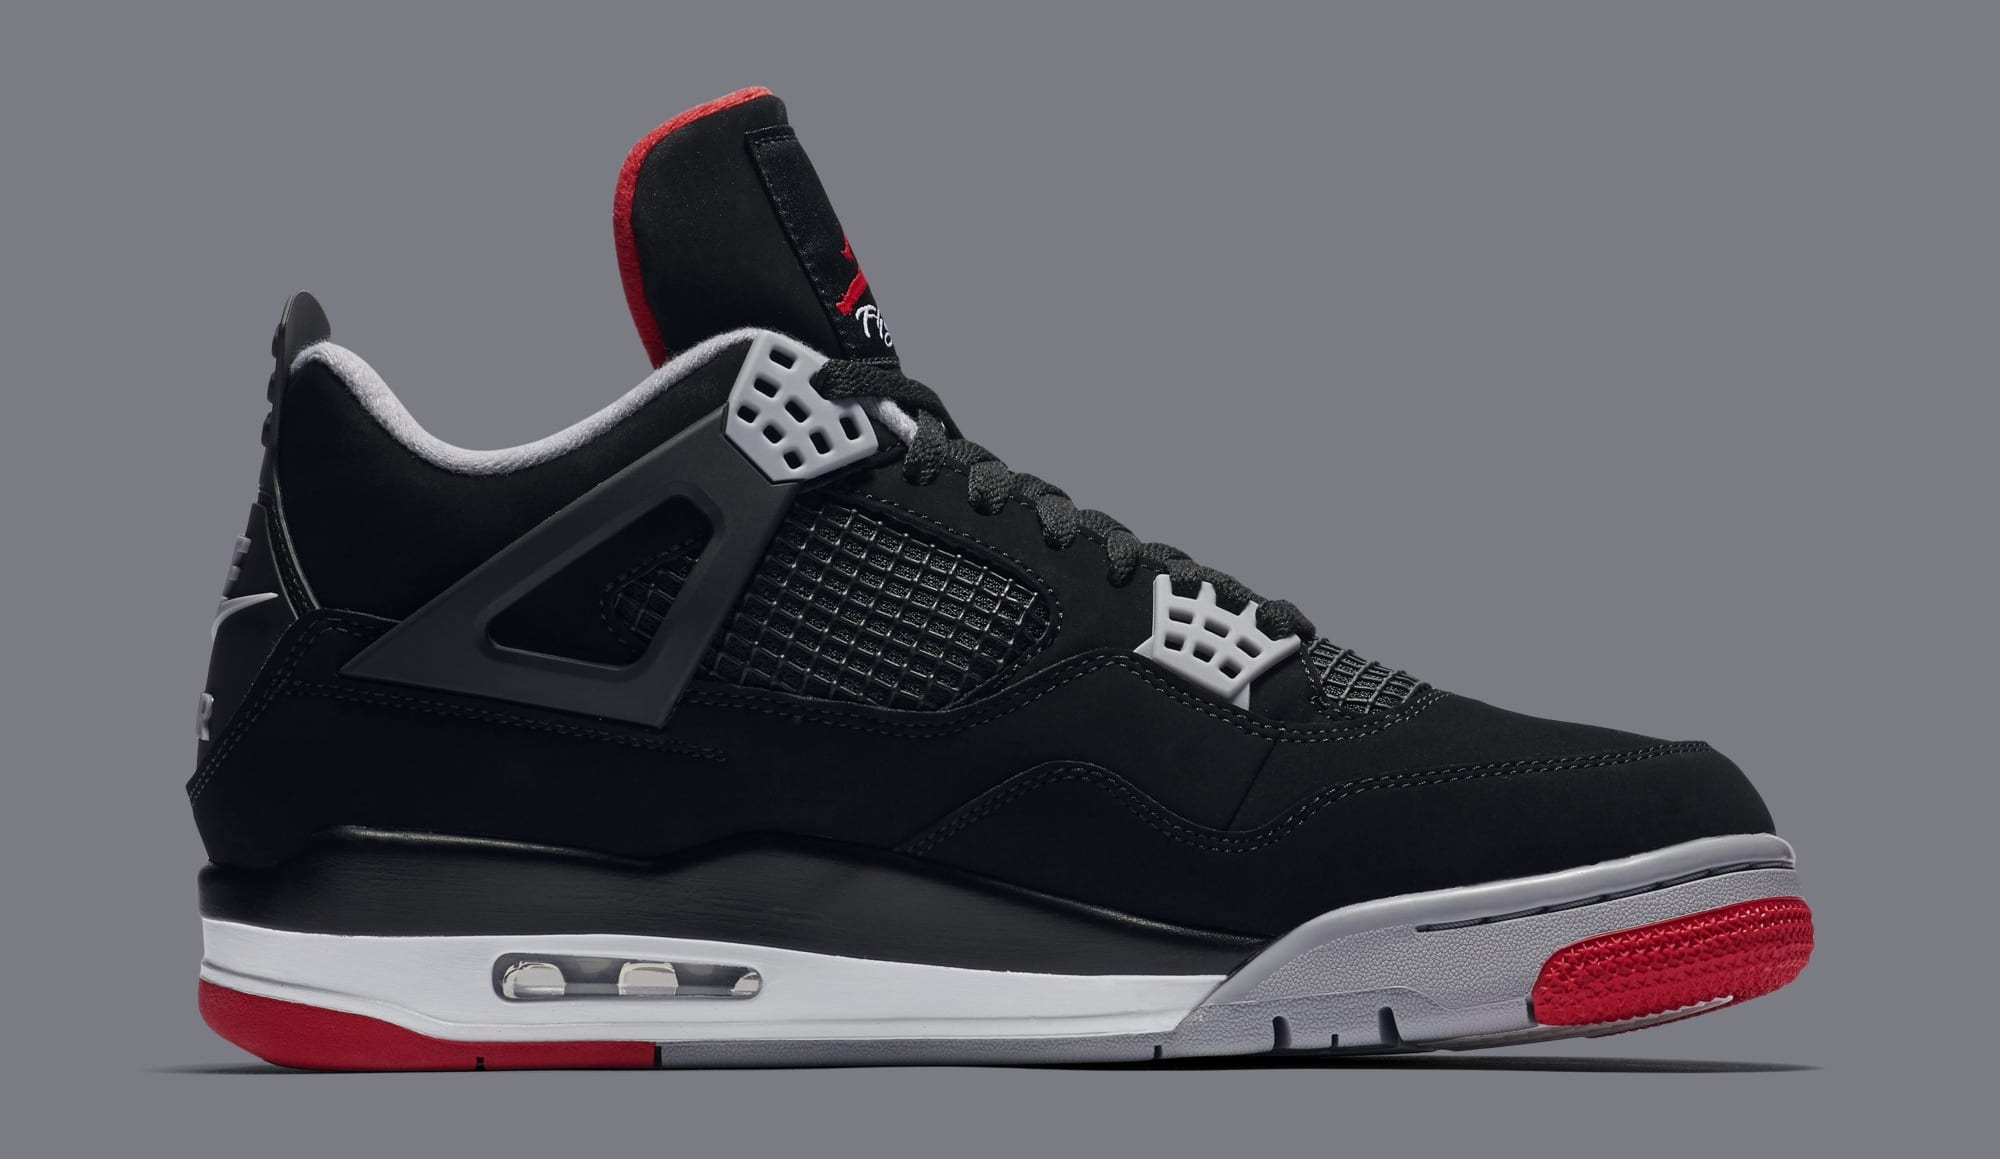 Air Jordan 4 'Bred' 308497-060 (Medial)